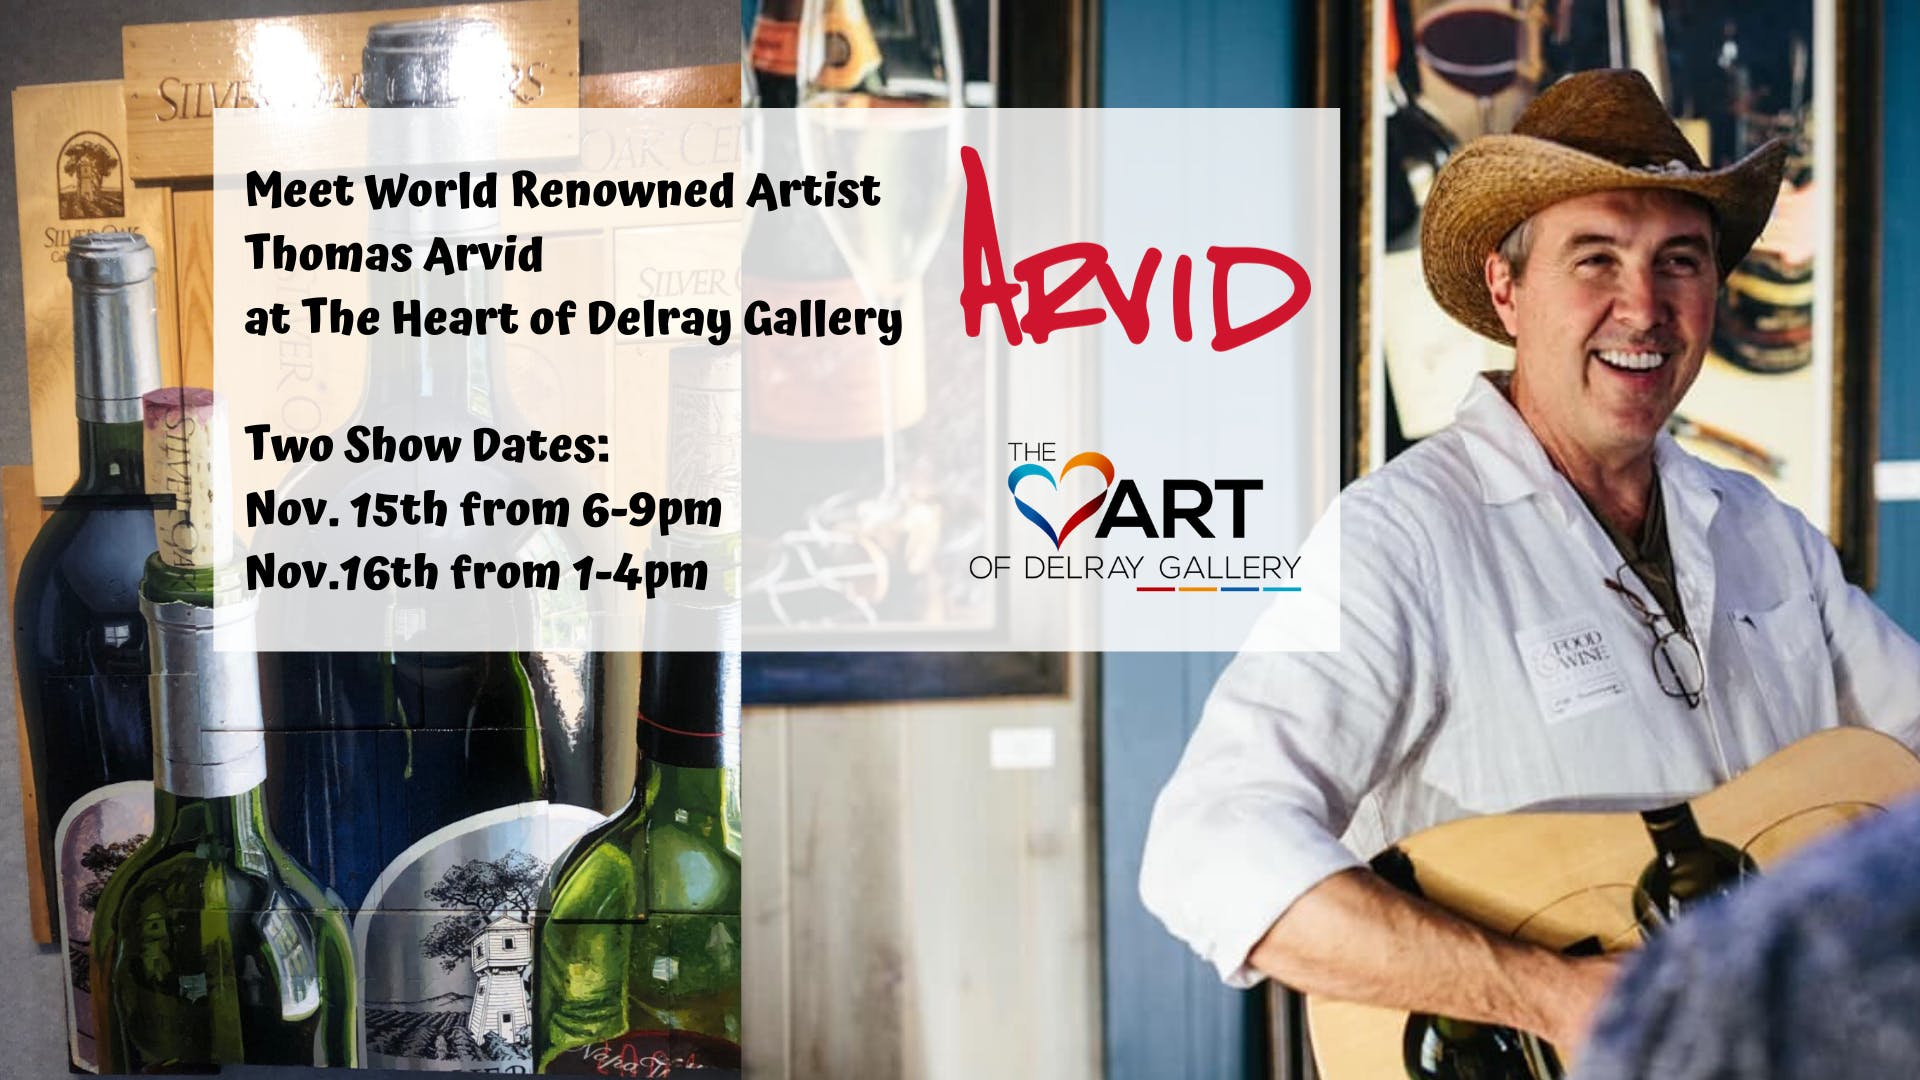 Meet Renowned Wine Painter, Thomas Arvid at The Heart of Delray Gallery